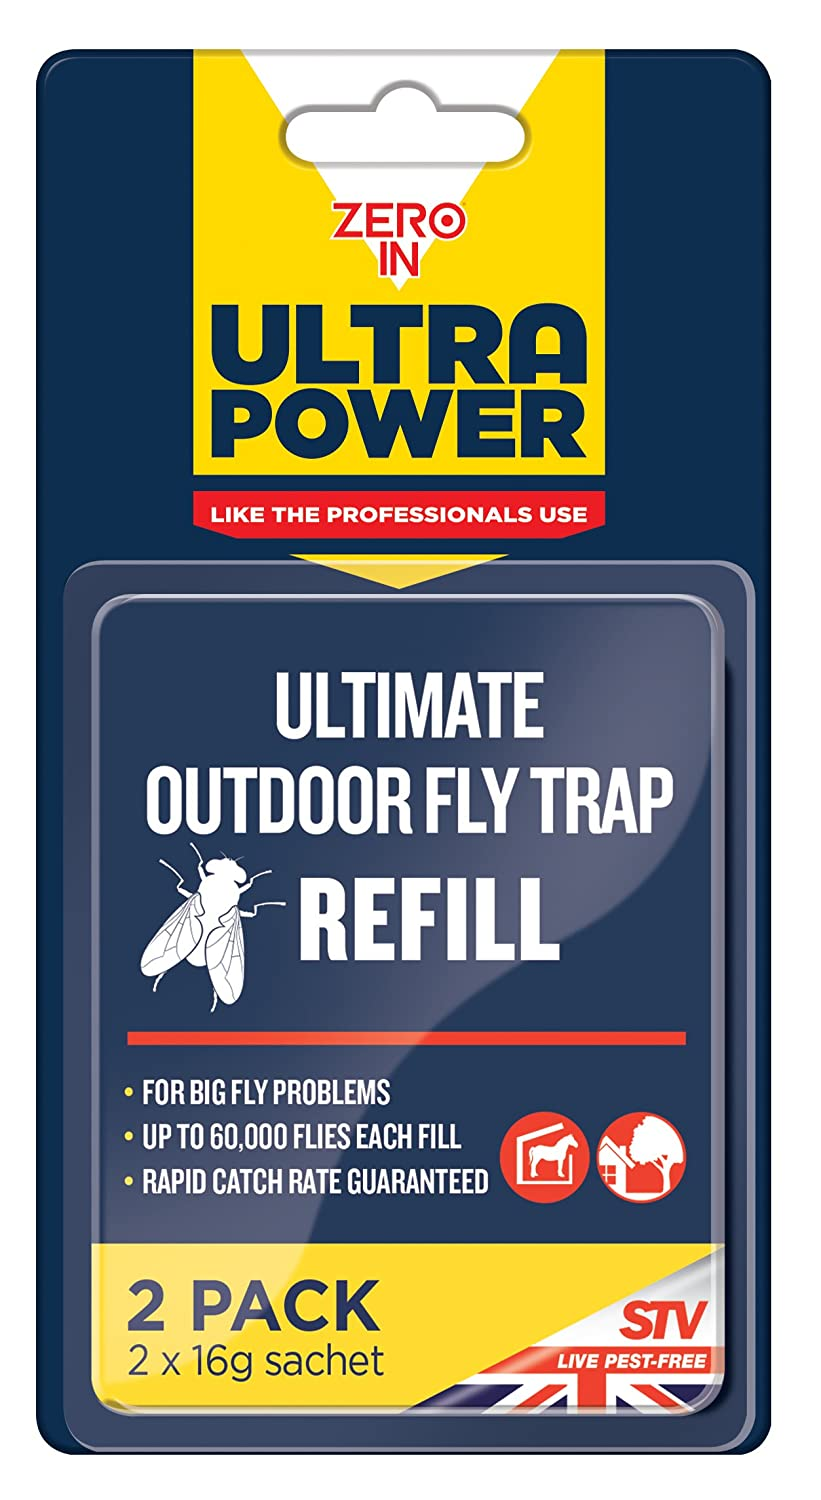 Zero In Ultra Power Ultimate Outdoor Fly Trap Bait Refill (Refill for Reusable Insect Catcher, Use in Gardens, Covers up to 10 m Radius, Effective Fly Bait) STV International Ltd ZER542